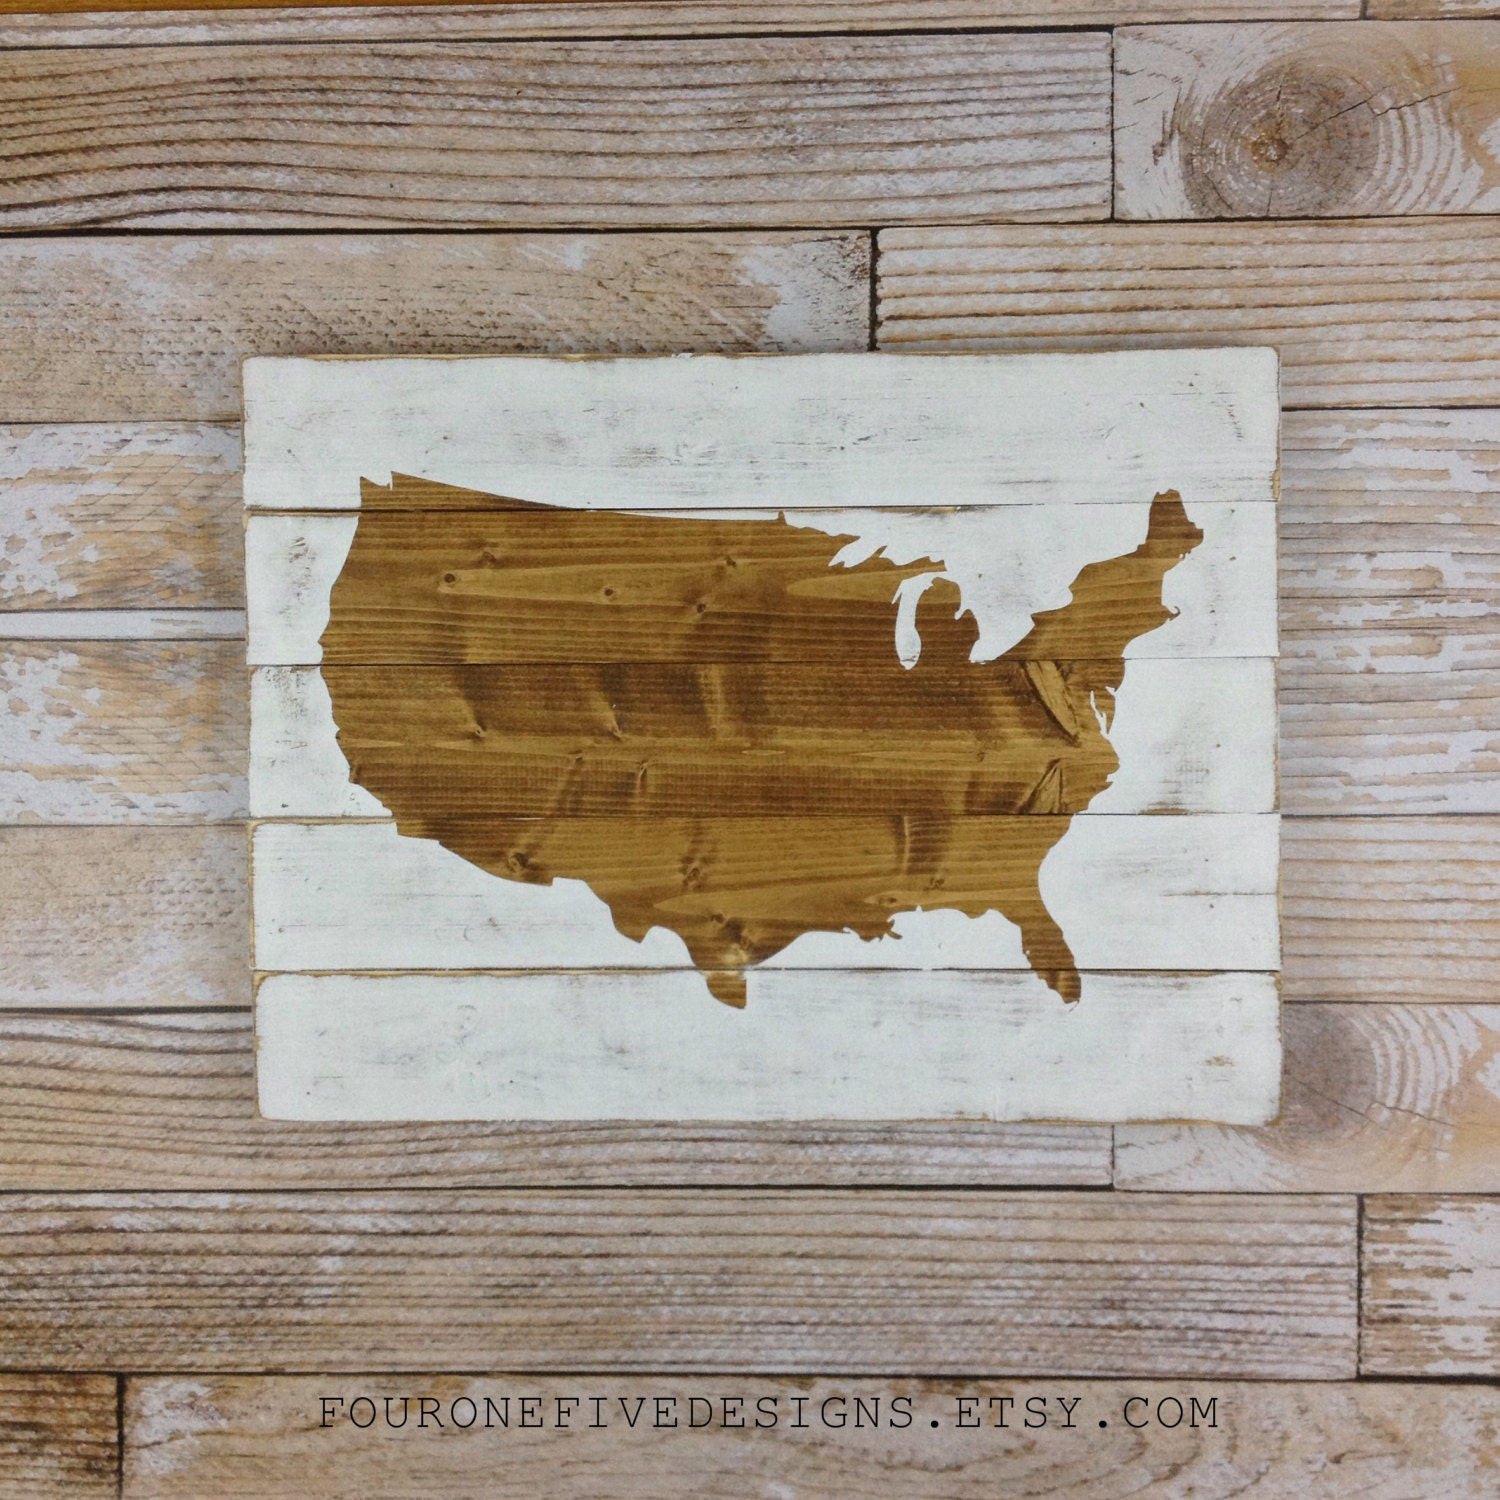 Art On Wood Planks ~ United states map wood plank sign home decor rustic art